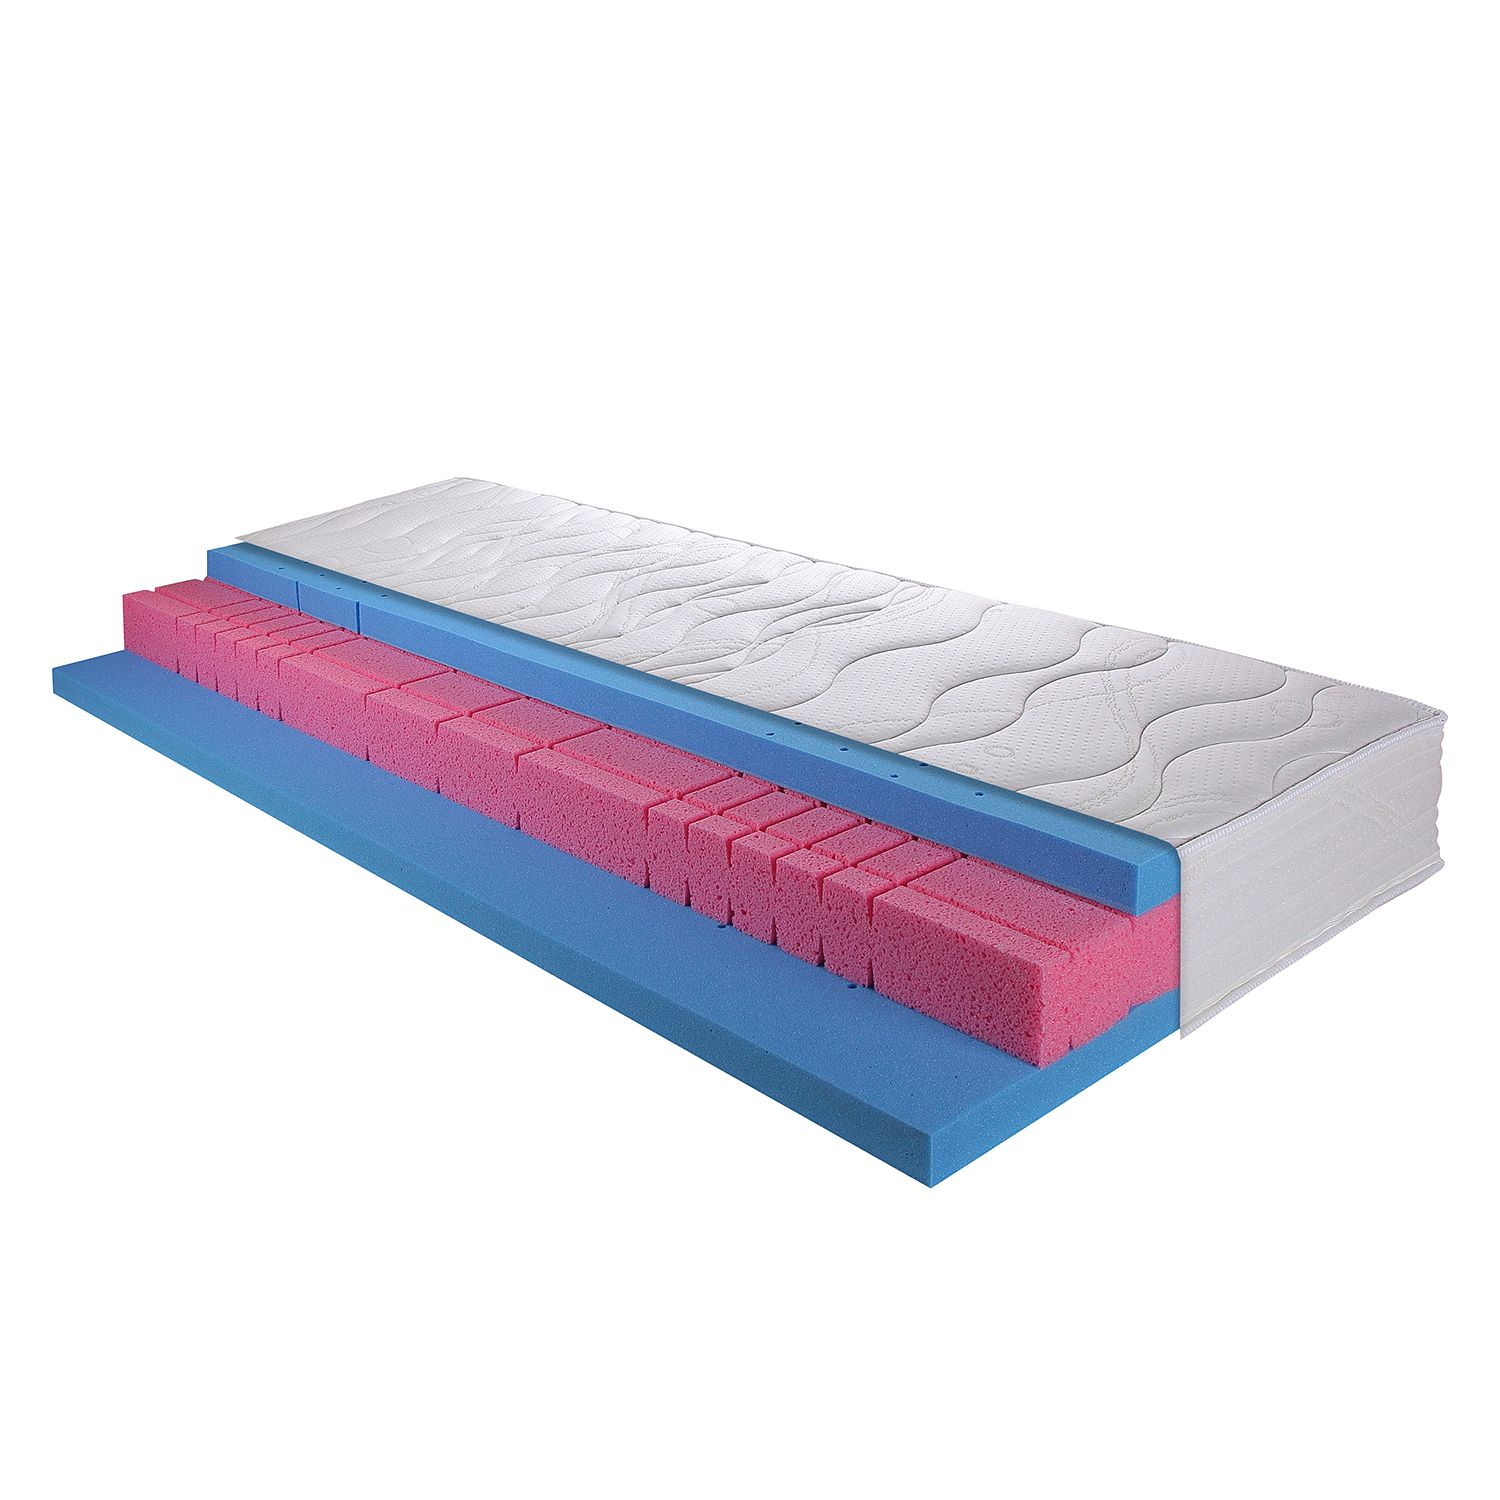 Matelas en mousse froide Ortho Air Gi - 160 x 200cm, Breckle